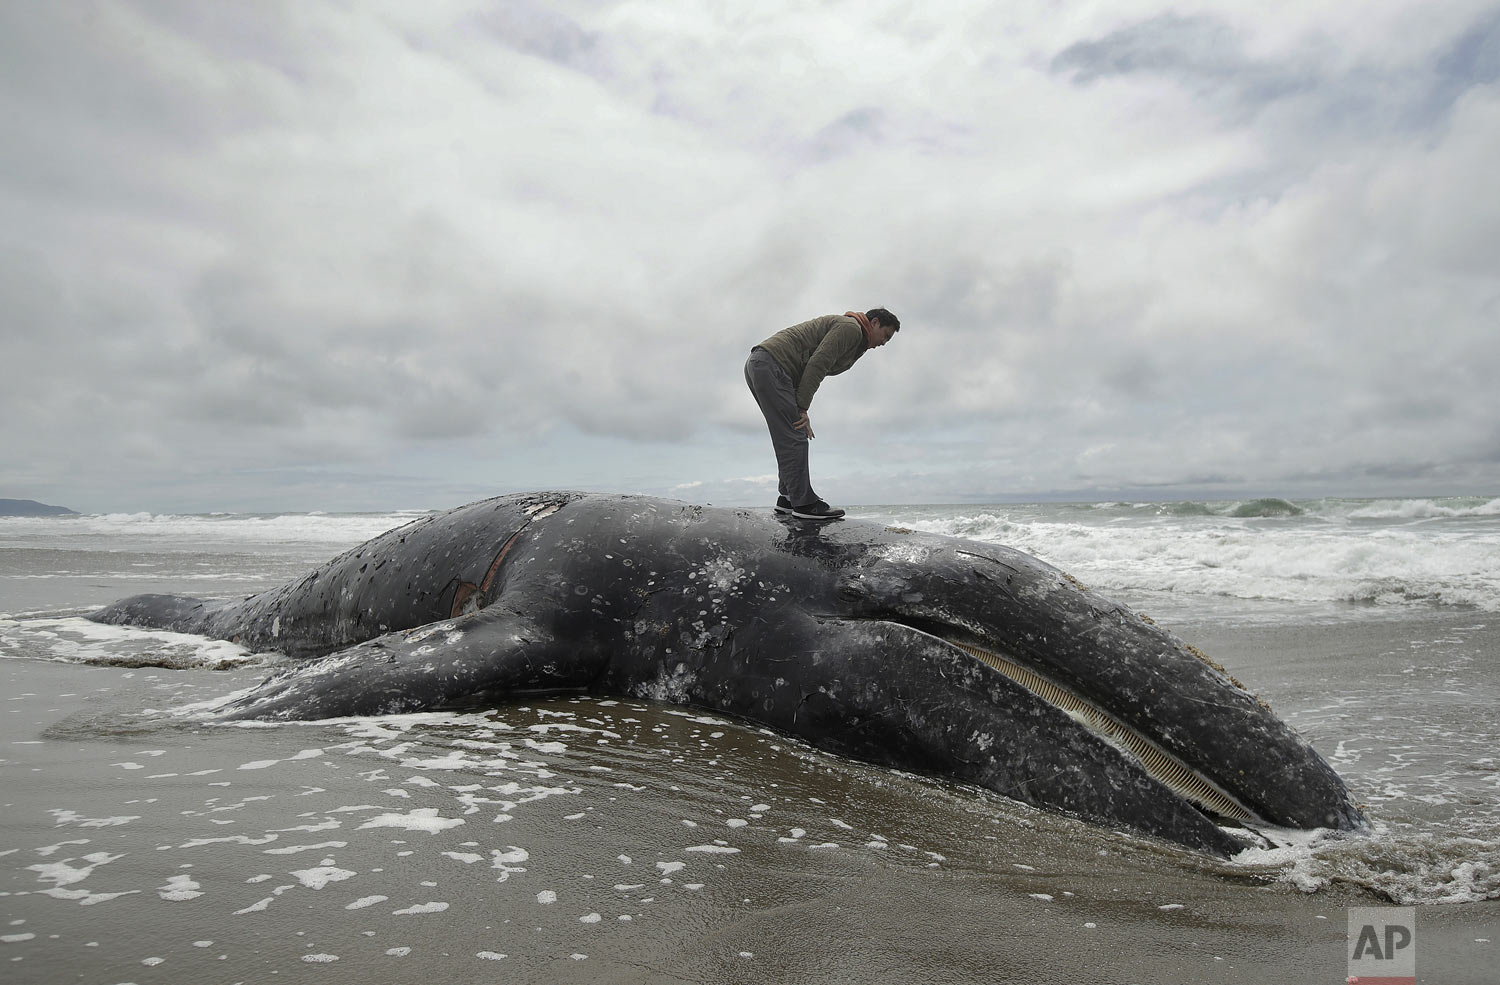 Duat Mai stands atop a dead whale at Ocean Beach in San Francisco, Monday, May 6, 2019. The Marine Mammal Center plans a necropsy to determine what killed the animal. (AP Photo/Jeff Chiu)